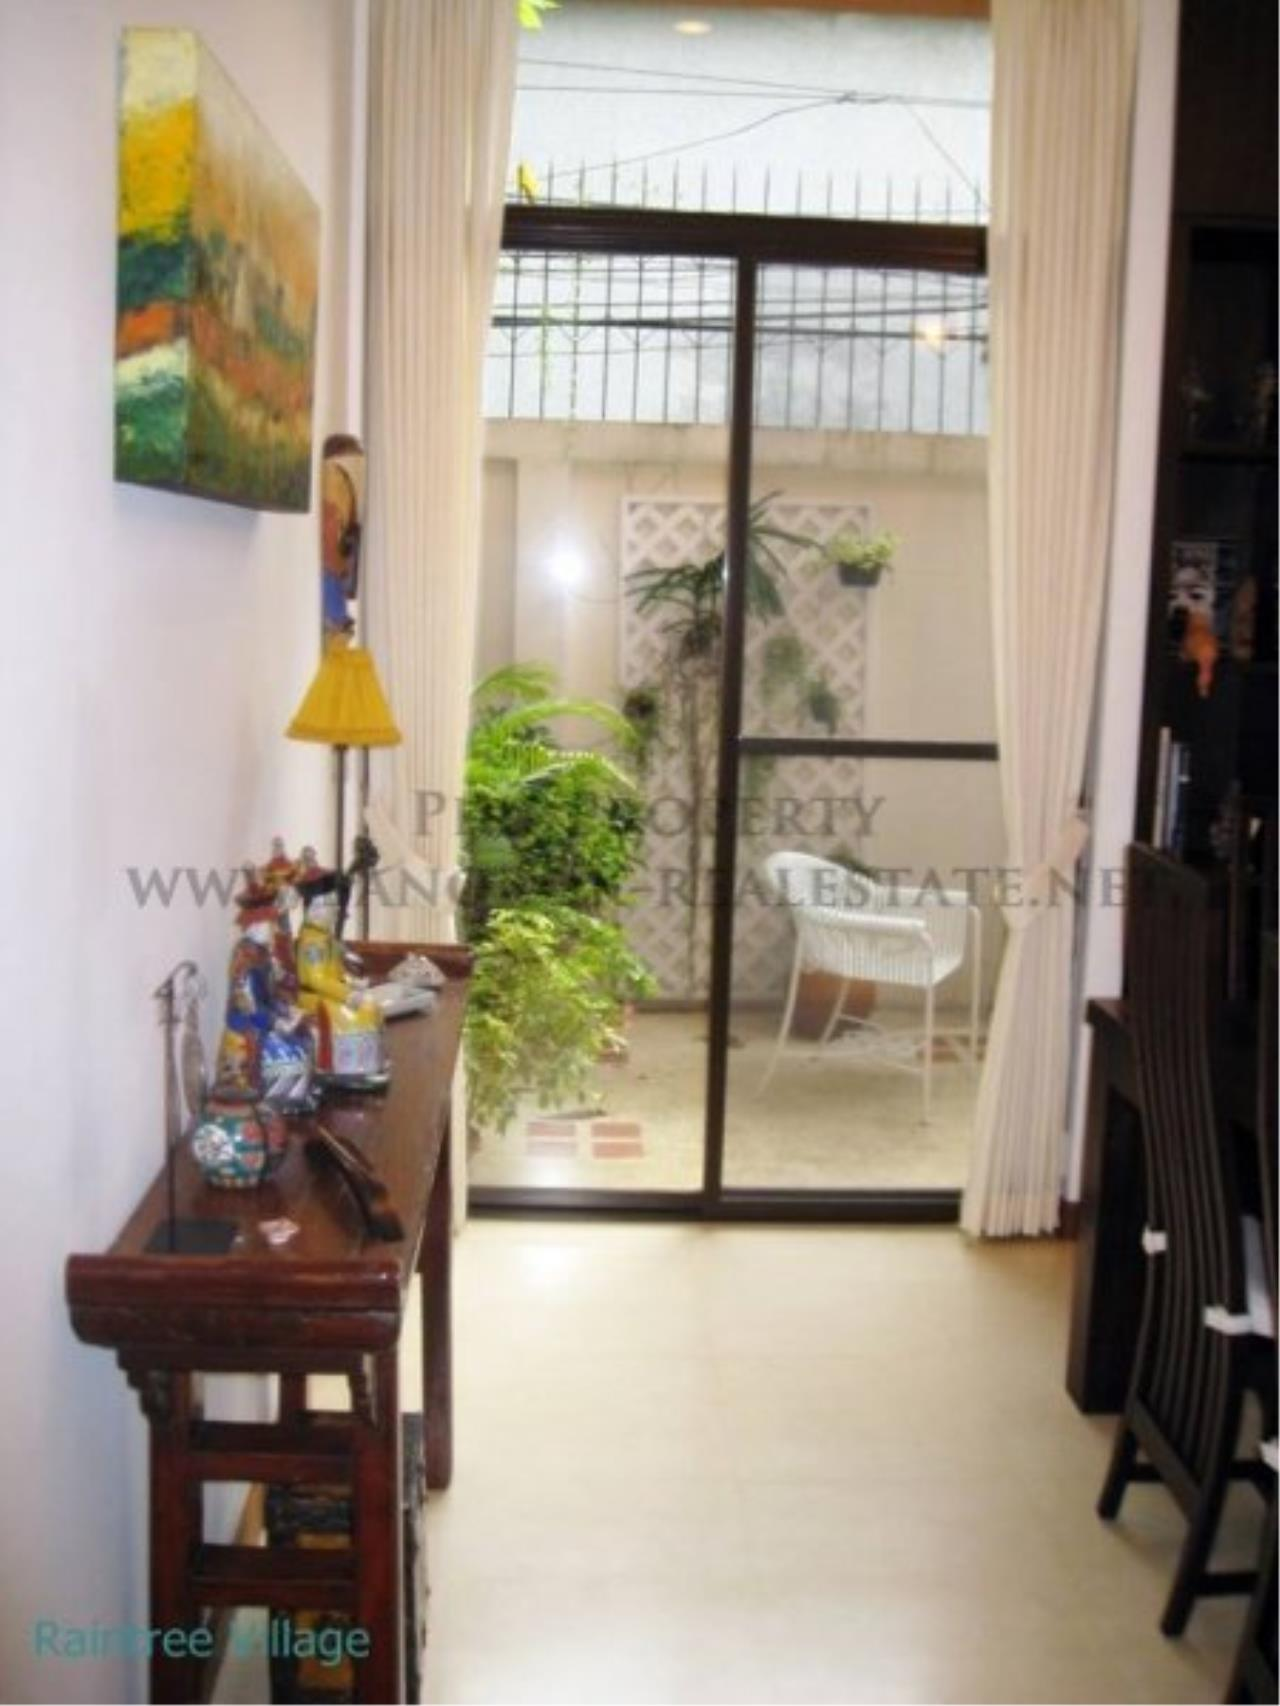 Piri Property Agency's Townhouse Apartment nearby Emporium for Rent - 3 plus 1 Bedroom 10